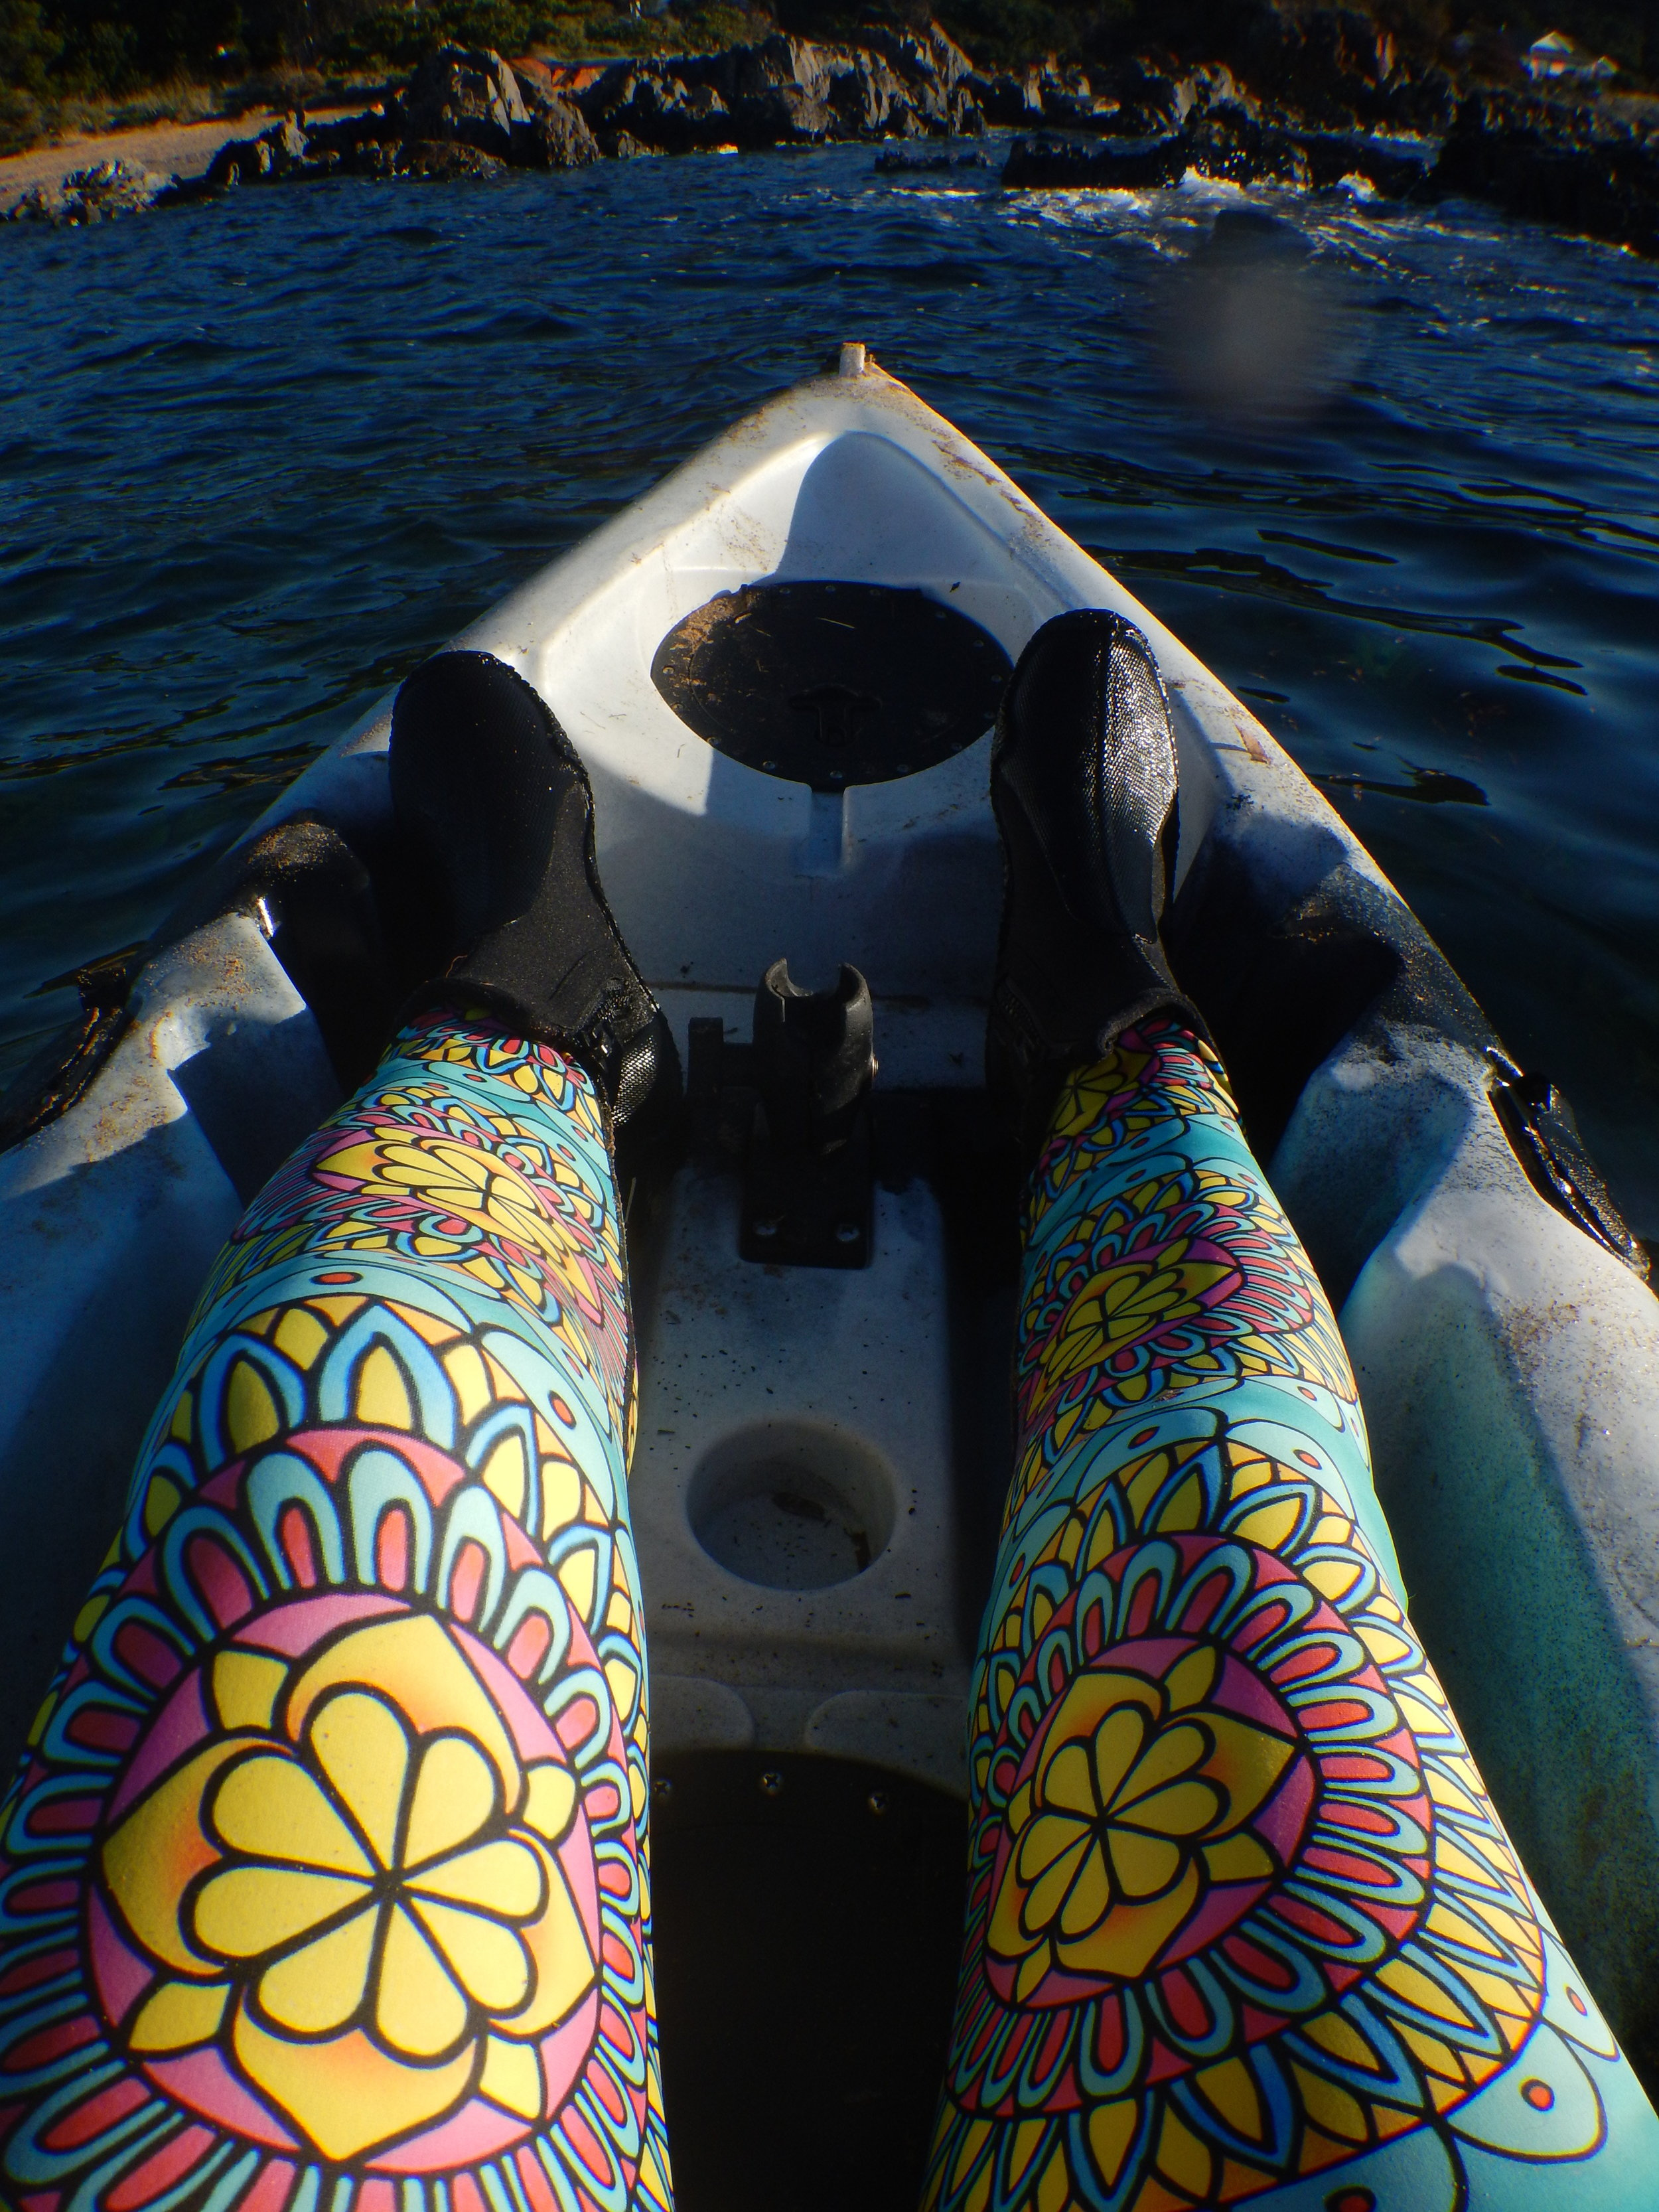 My new leggings are comfy in the kayak.